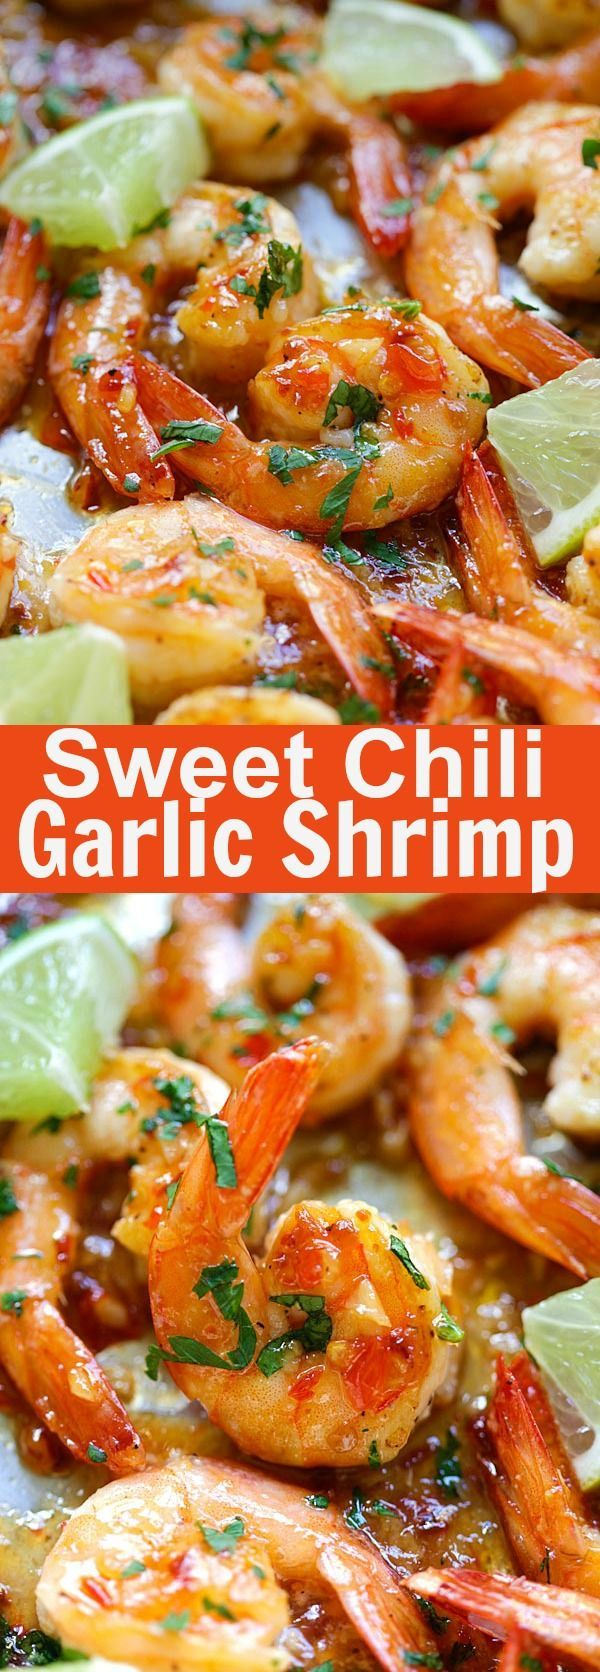 Sweet Chili Garlic Shrimp – easiest and most delicious shrimp you can make in 15 mins with garlic and Thai sweet chili sauce. SO good   rasamalaysia.com